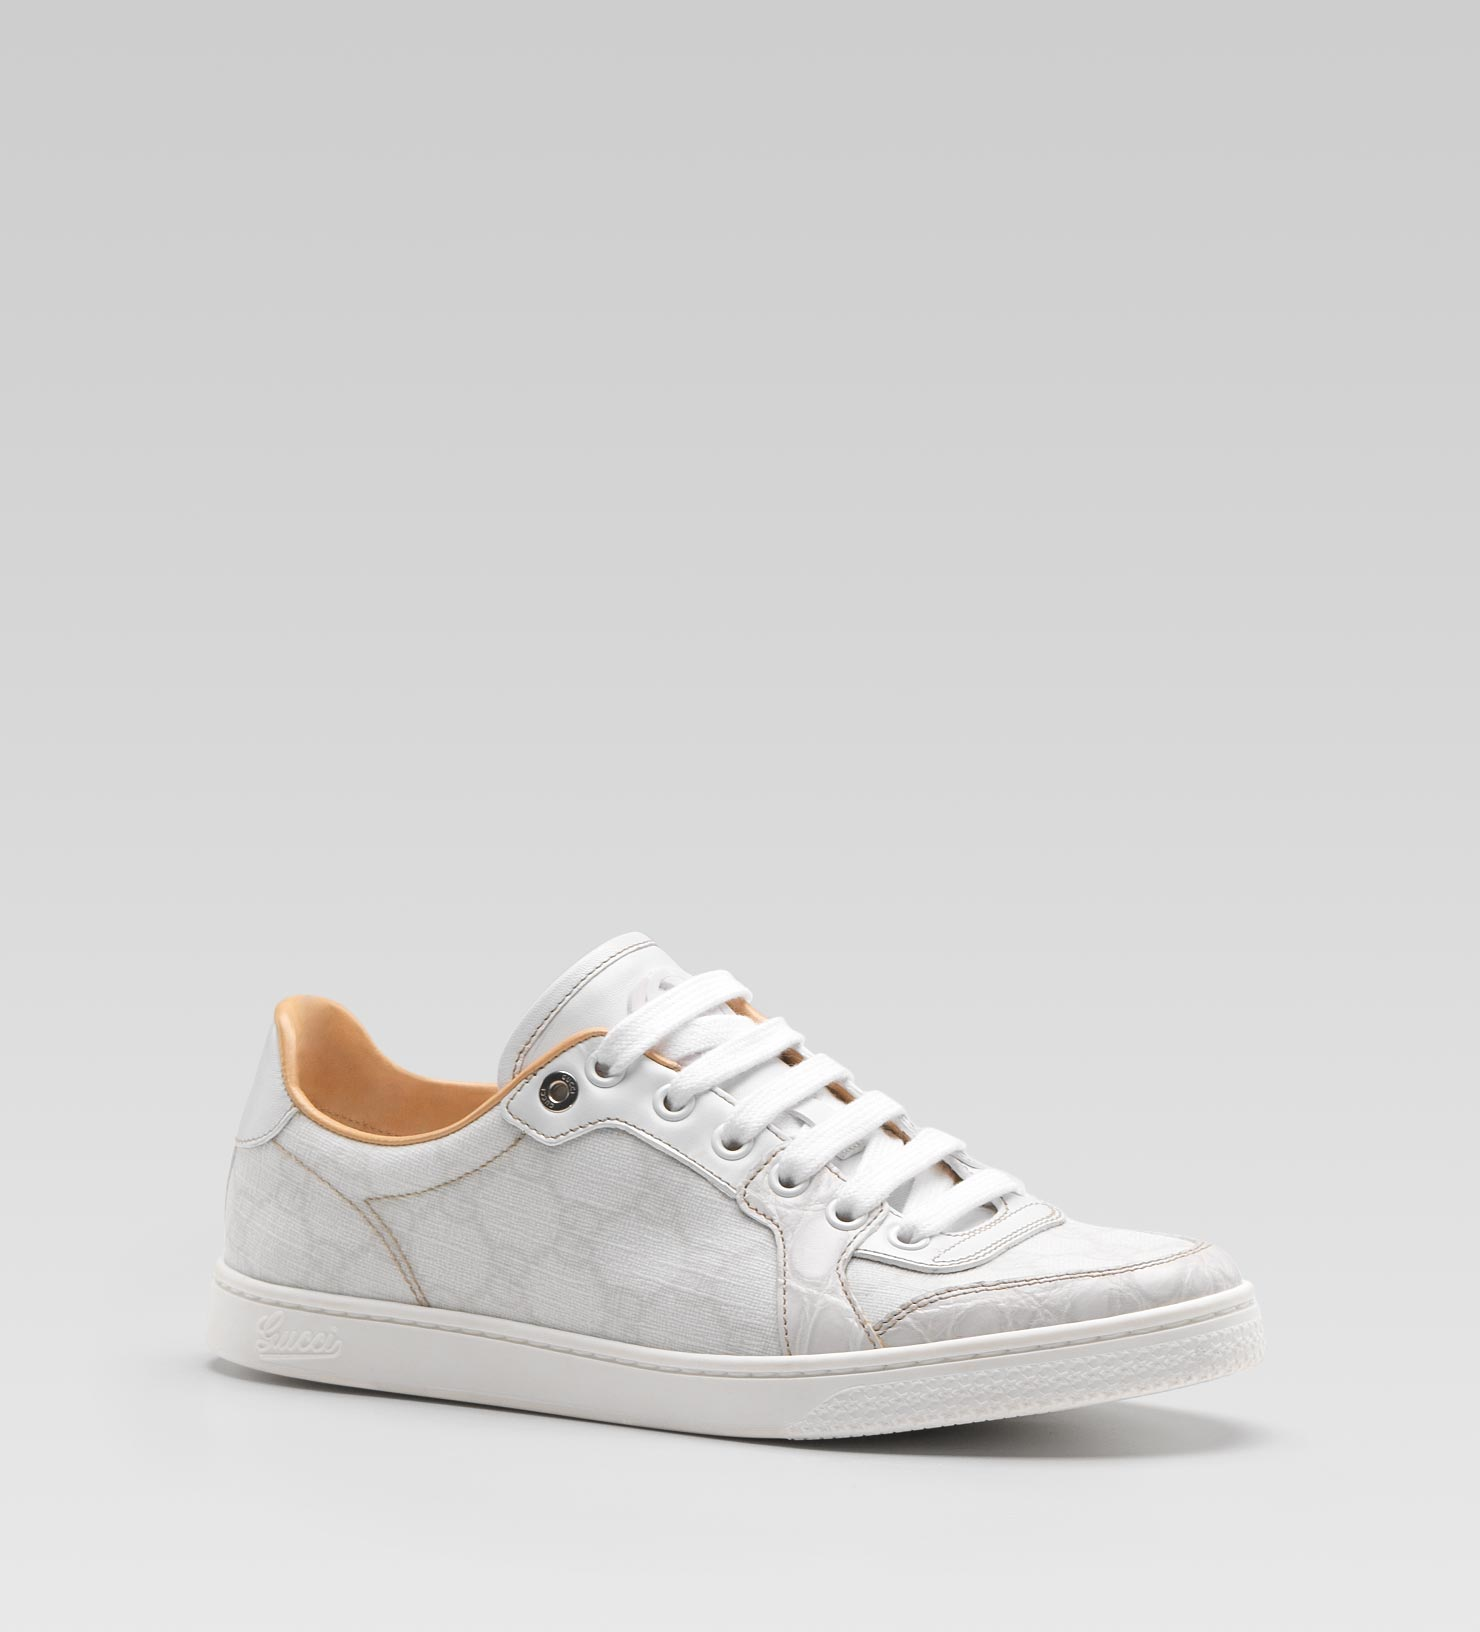 6b4c8bc08cb Gucci Coda Low Laceup Sneaker with Interlocking G Detail in White - Lyst